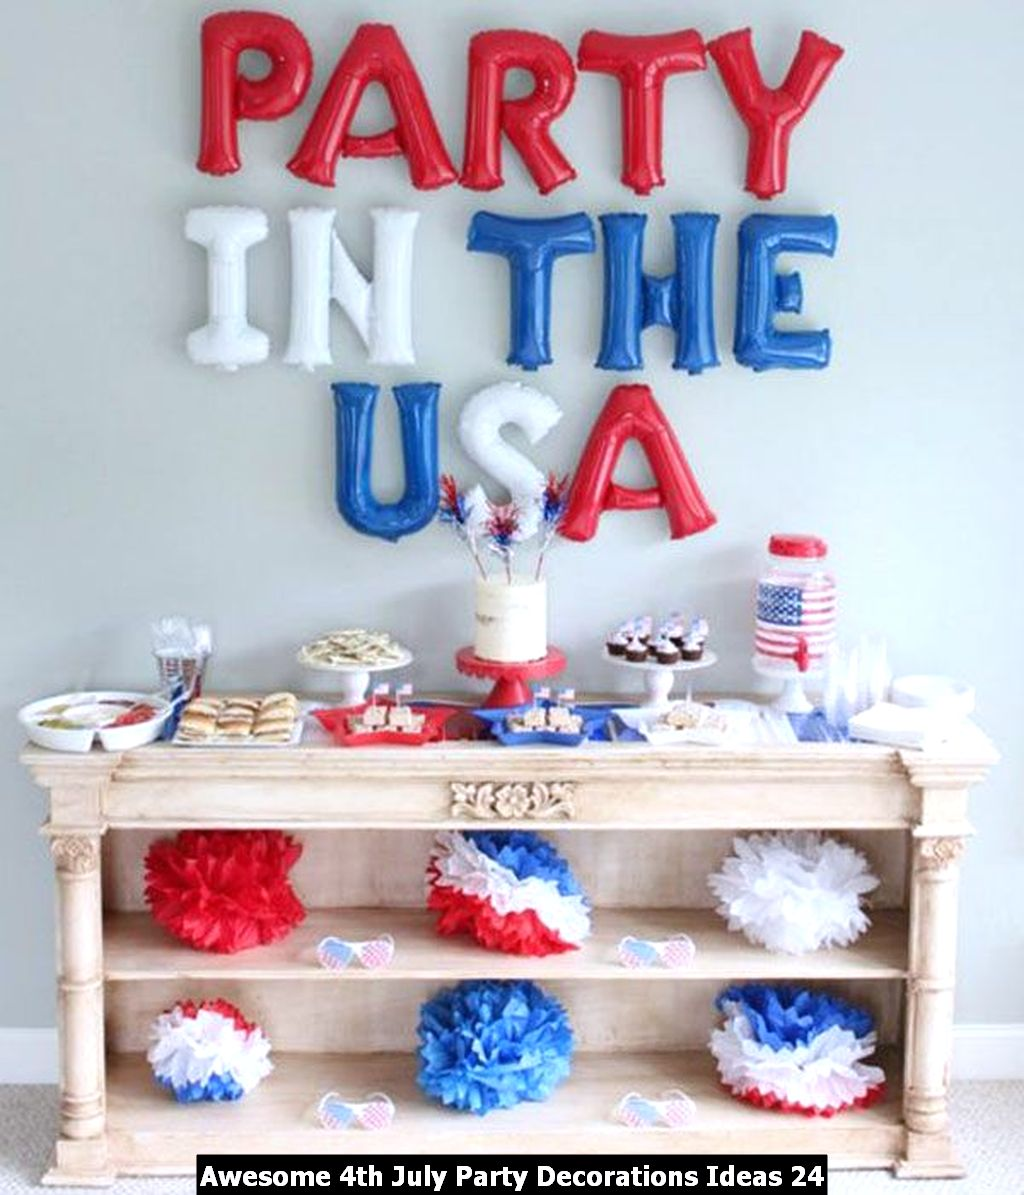 Awesome 4th July Party Decorations Ideas 24